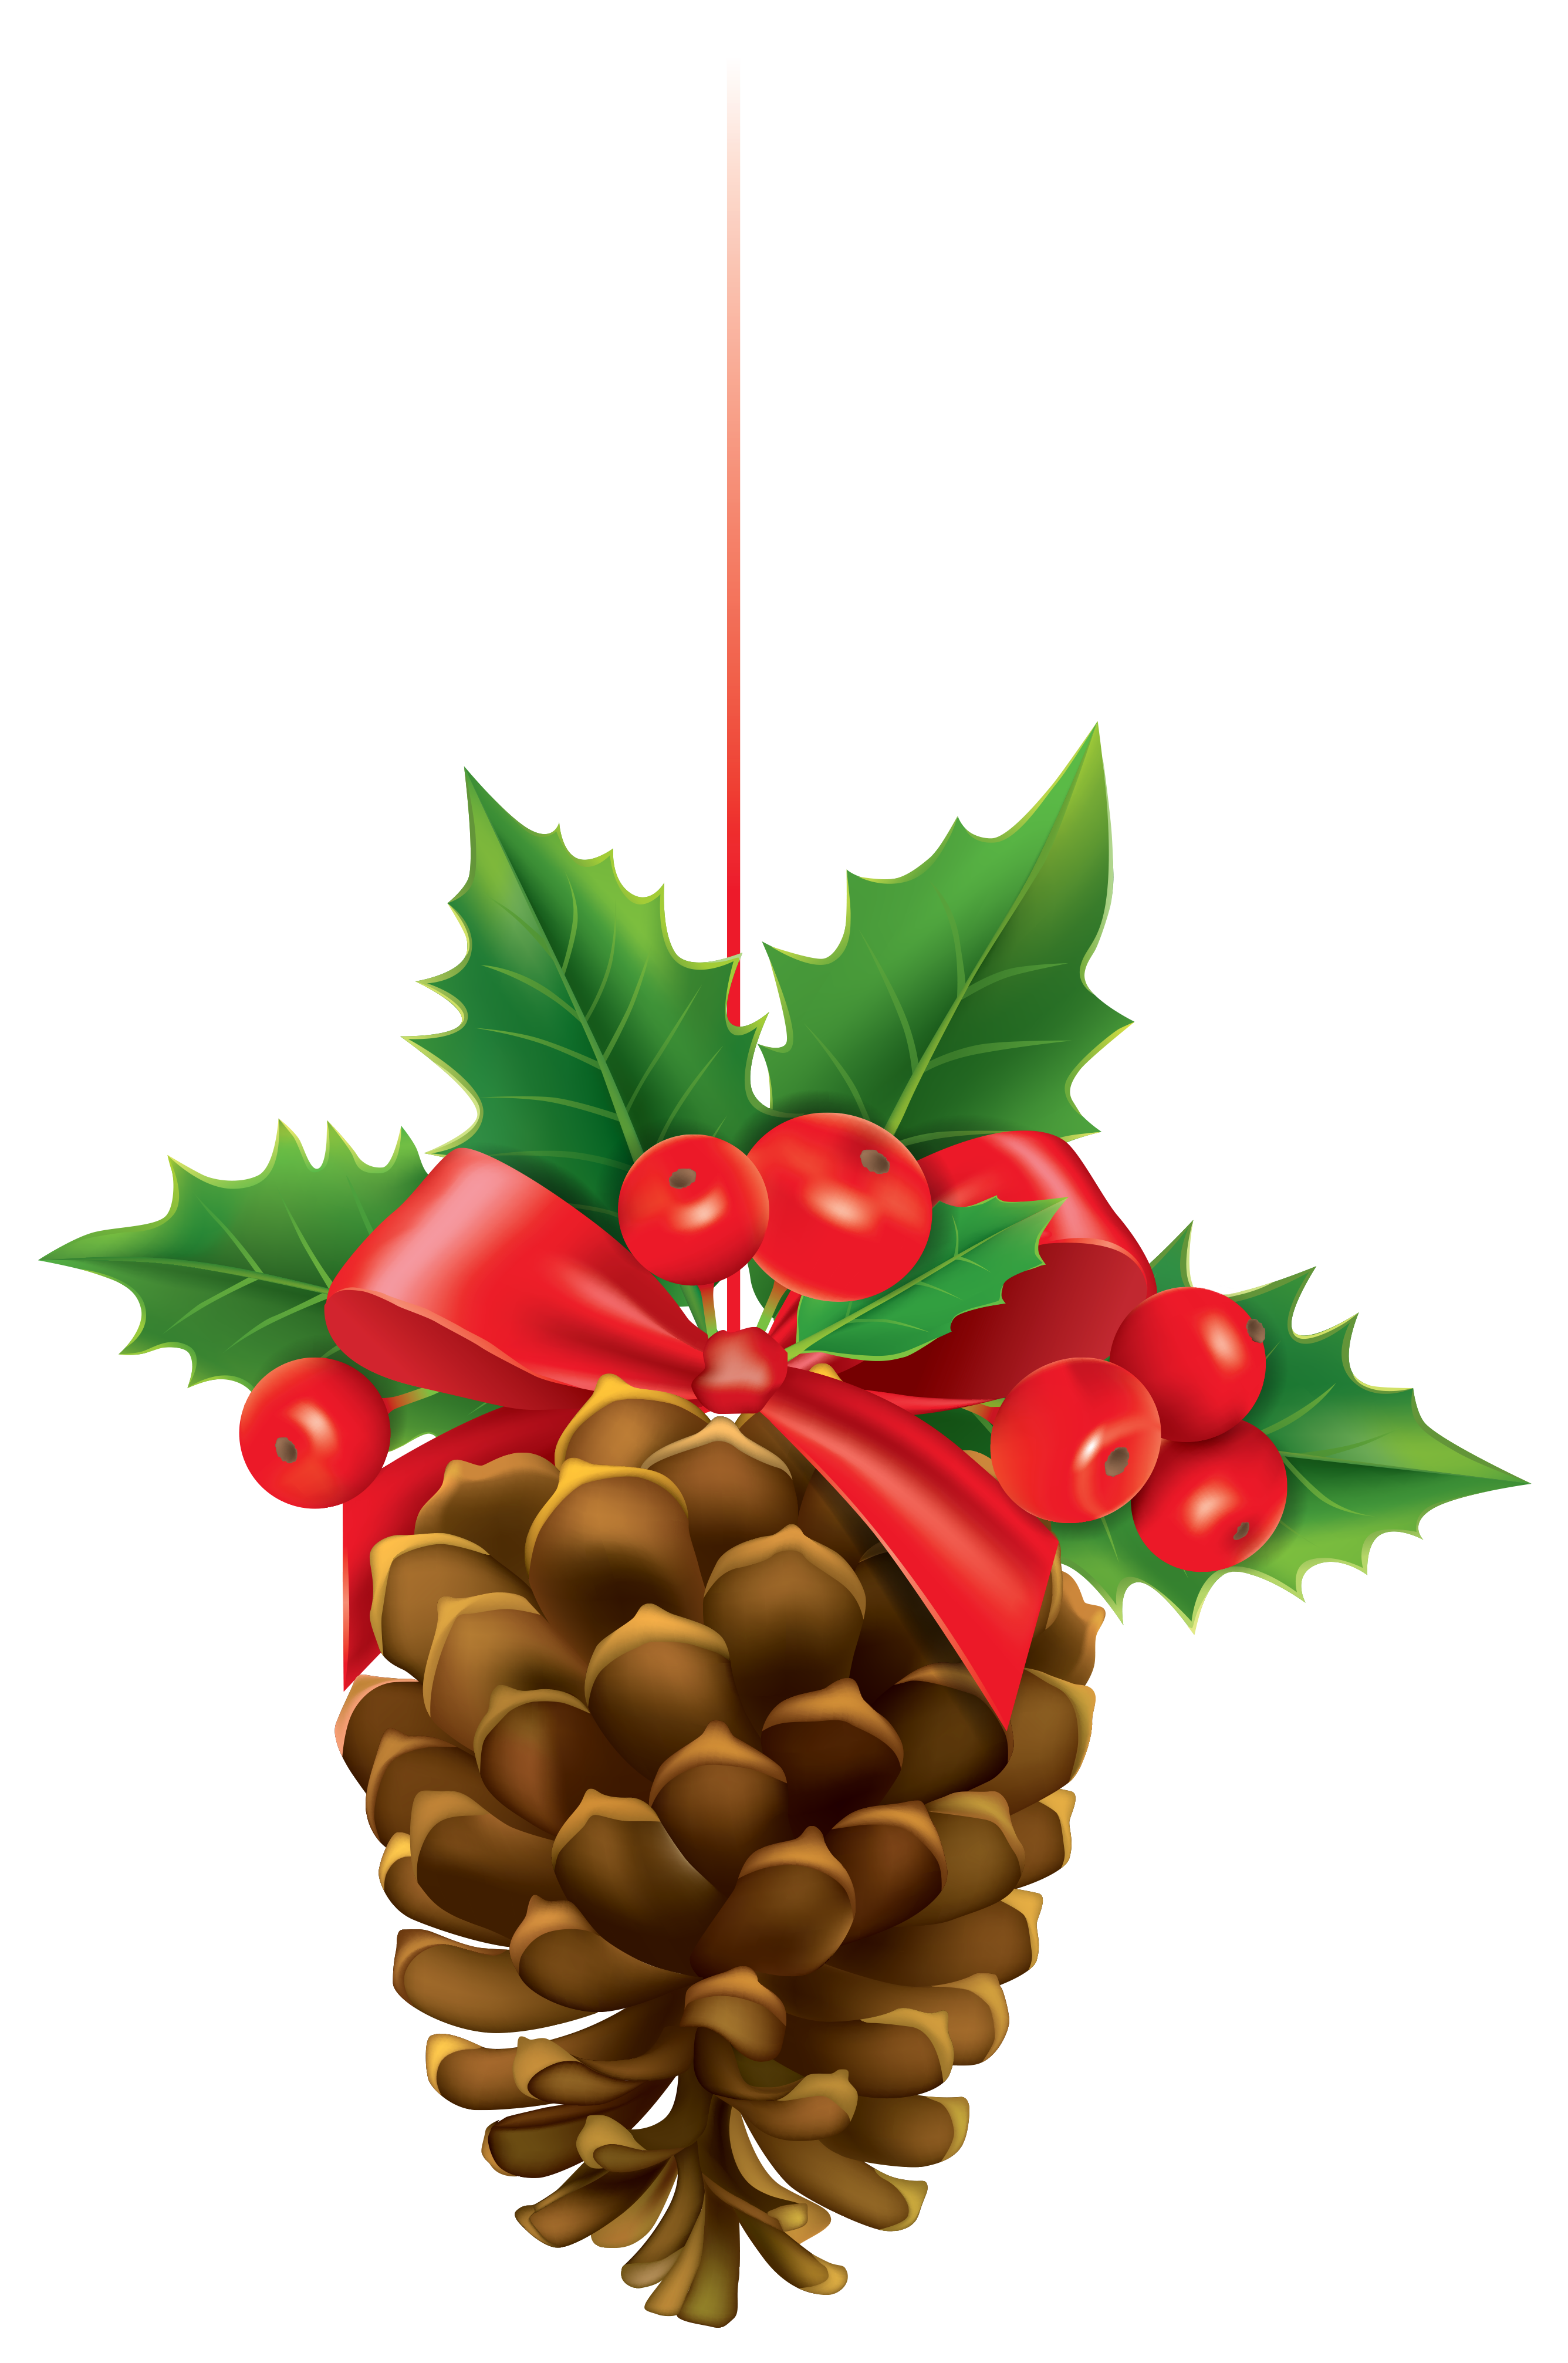 Christmas Pinecone with Mistletoe PNG Clipart Image.